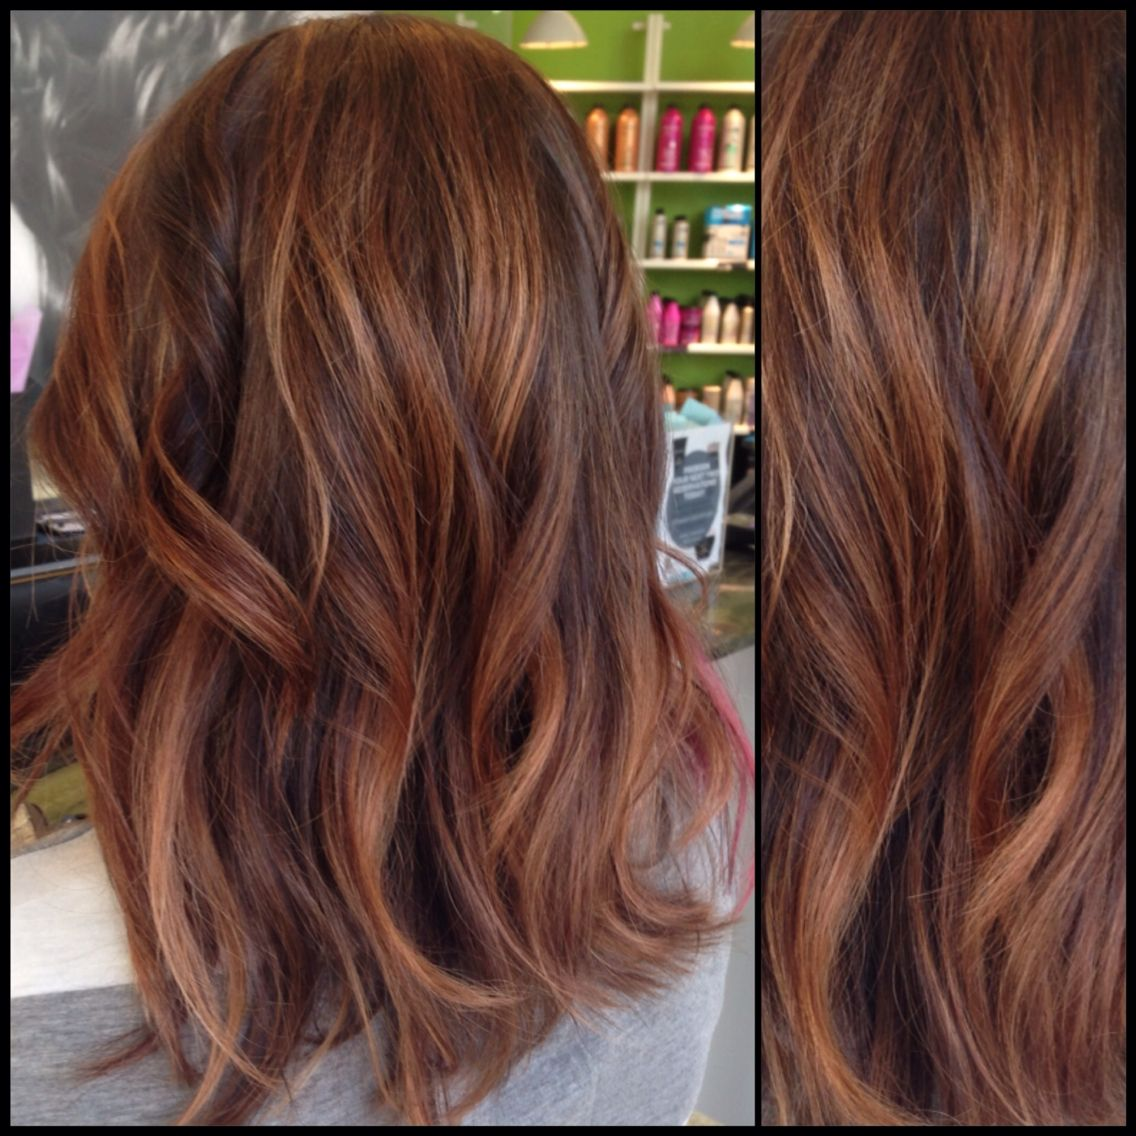 Warm fall brunette balayage | Hair | Pinterest | Balayage ...